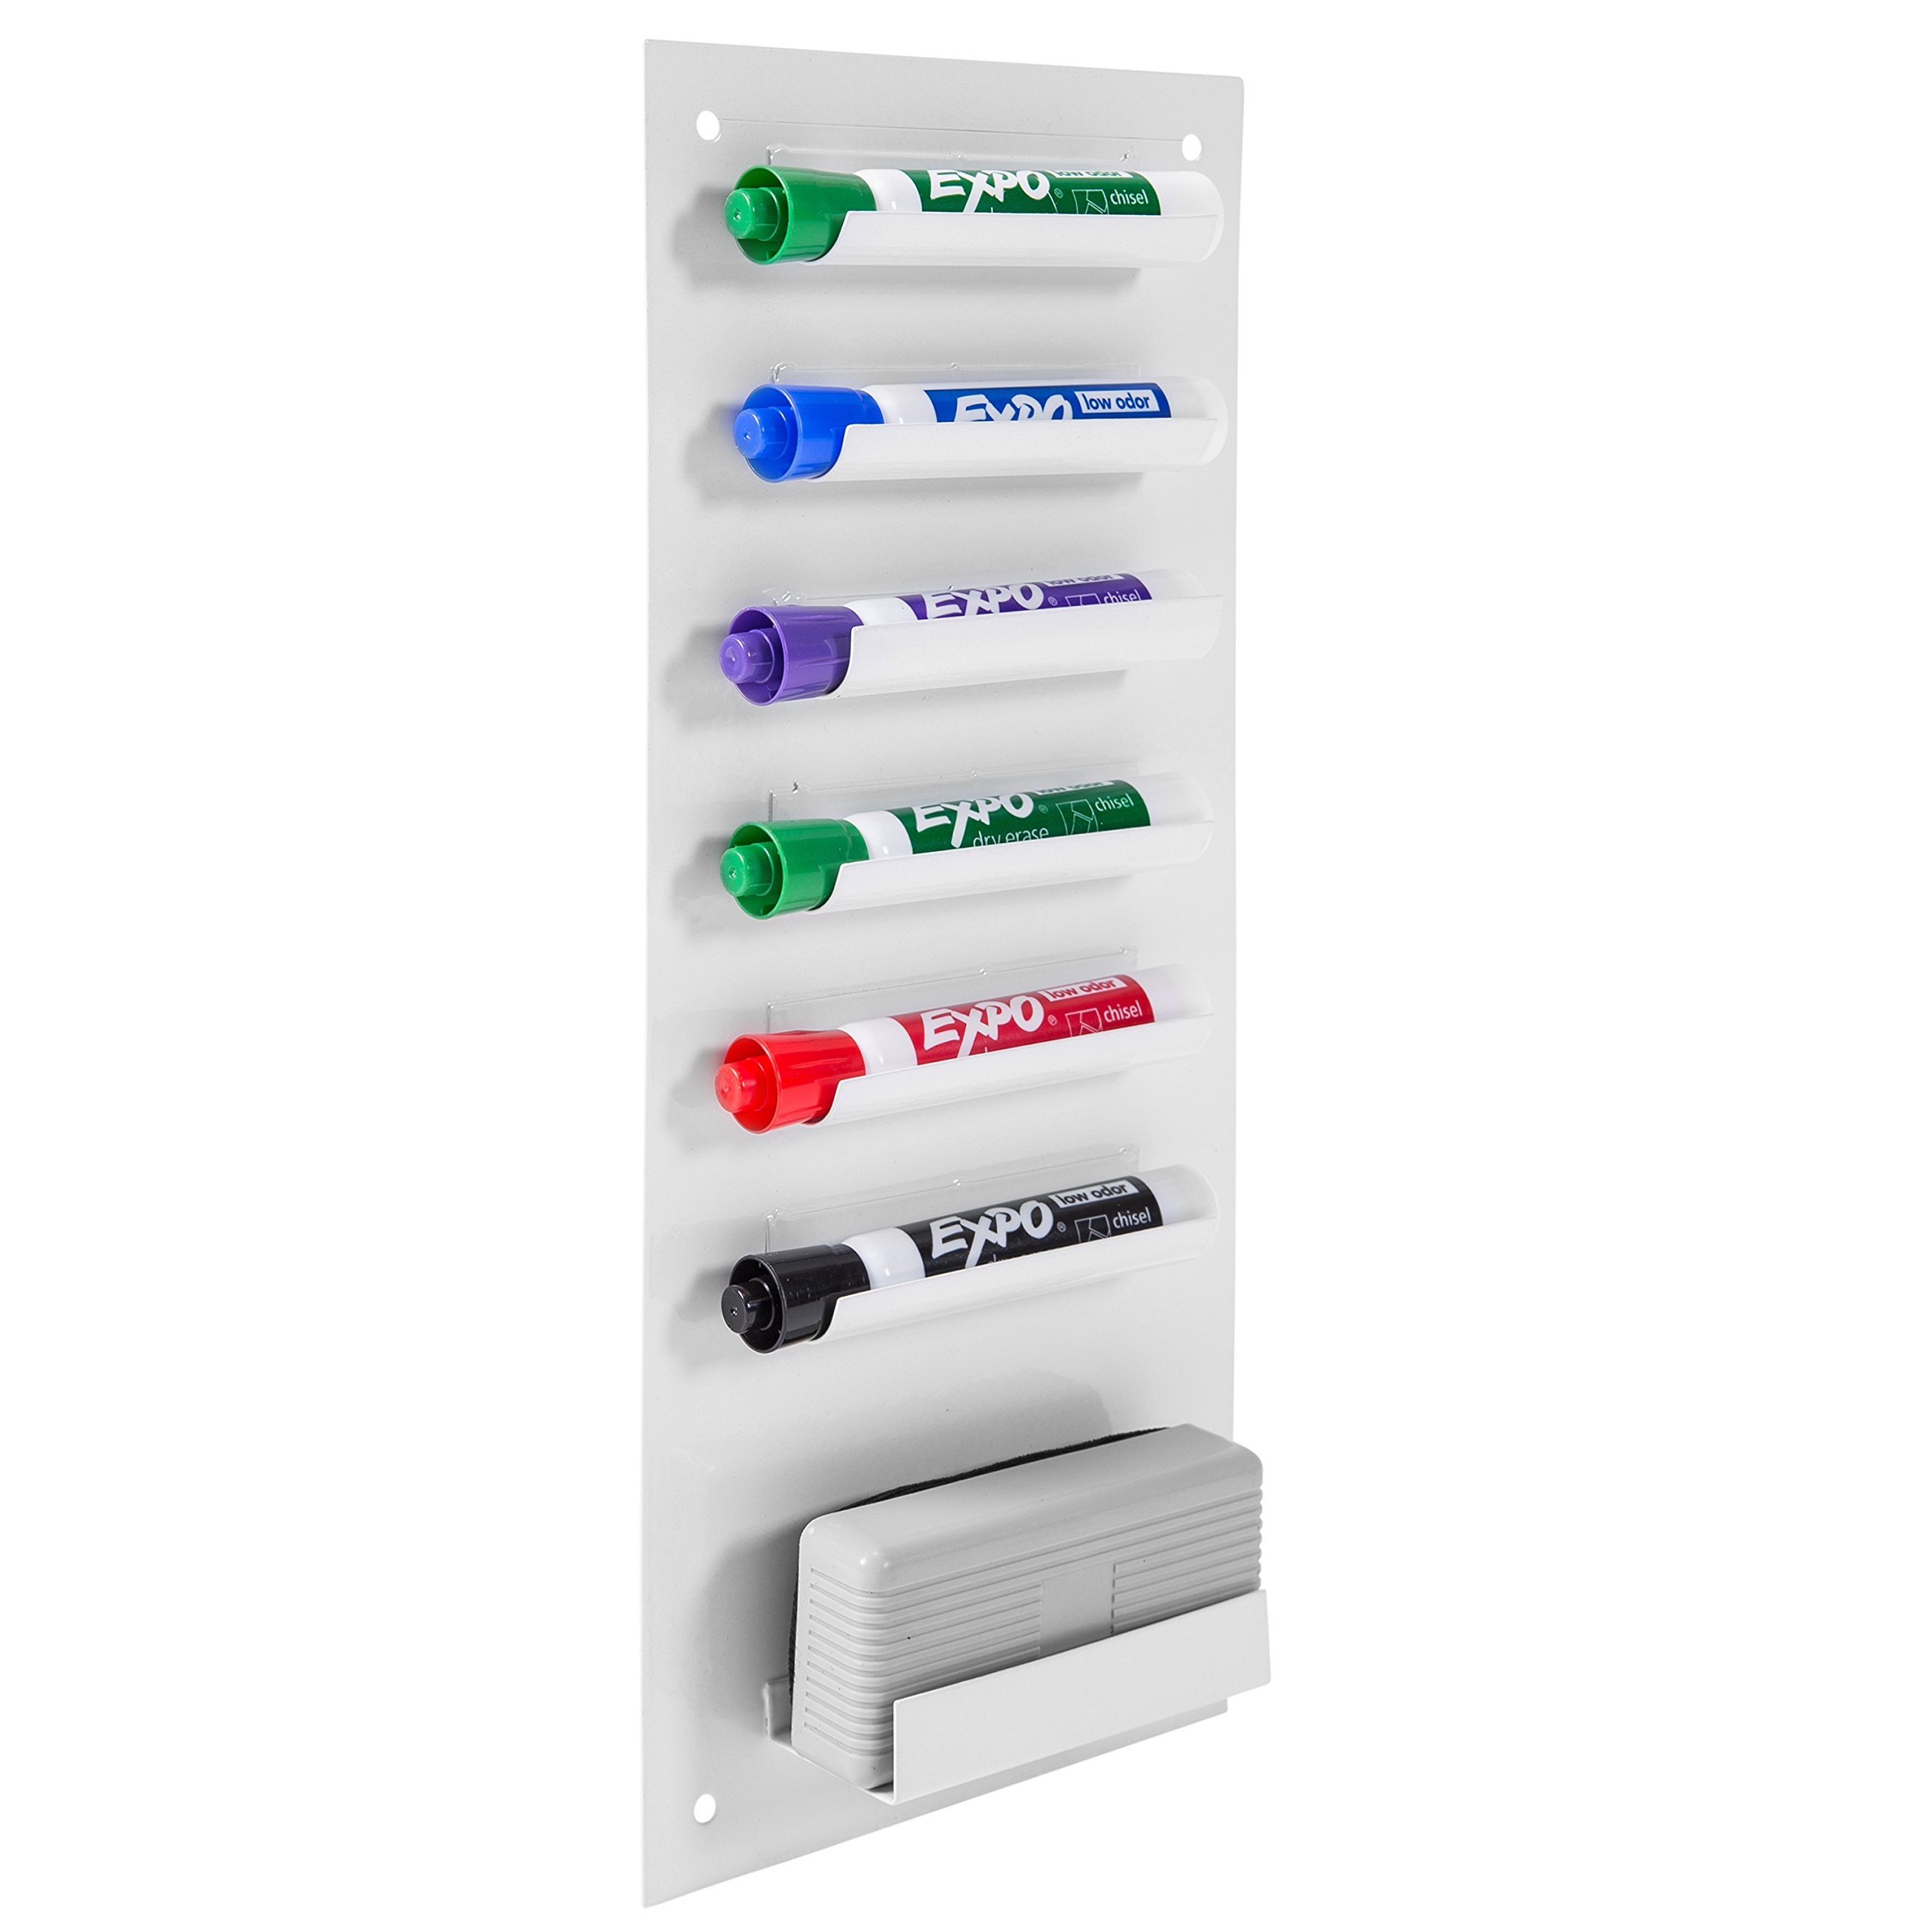 6-Slot Wall Mounted Metal Dry Erase Marker and Eraser Holder/Vertical Storage System, White